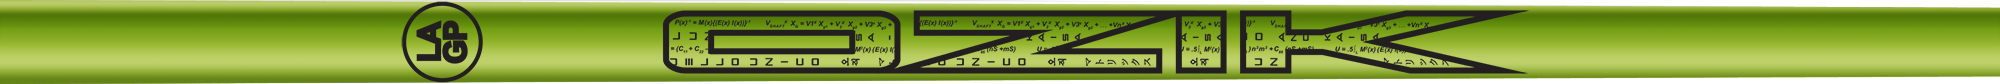 Ozik White Tie: Lime Green Black Gloss - Wood 40 R